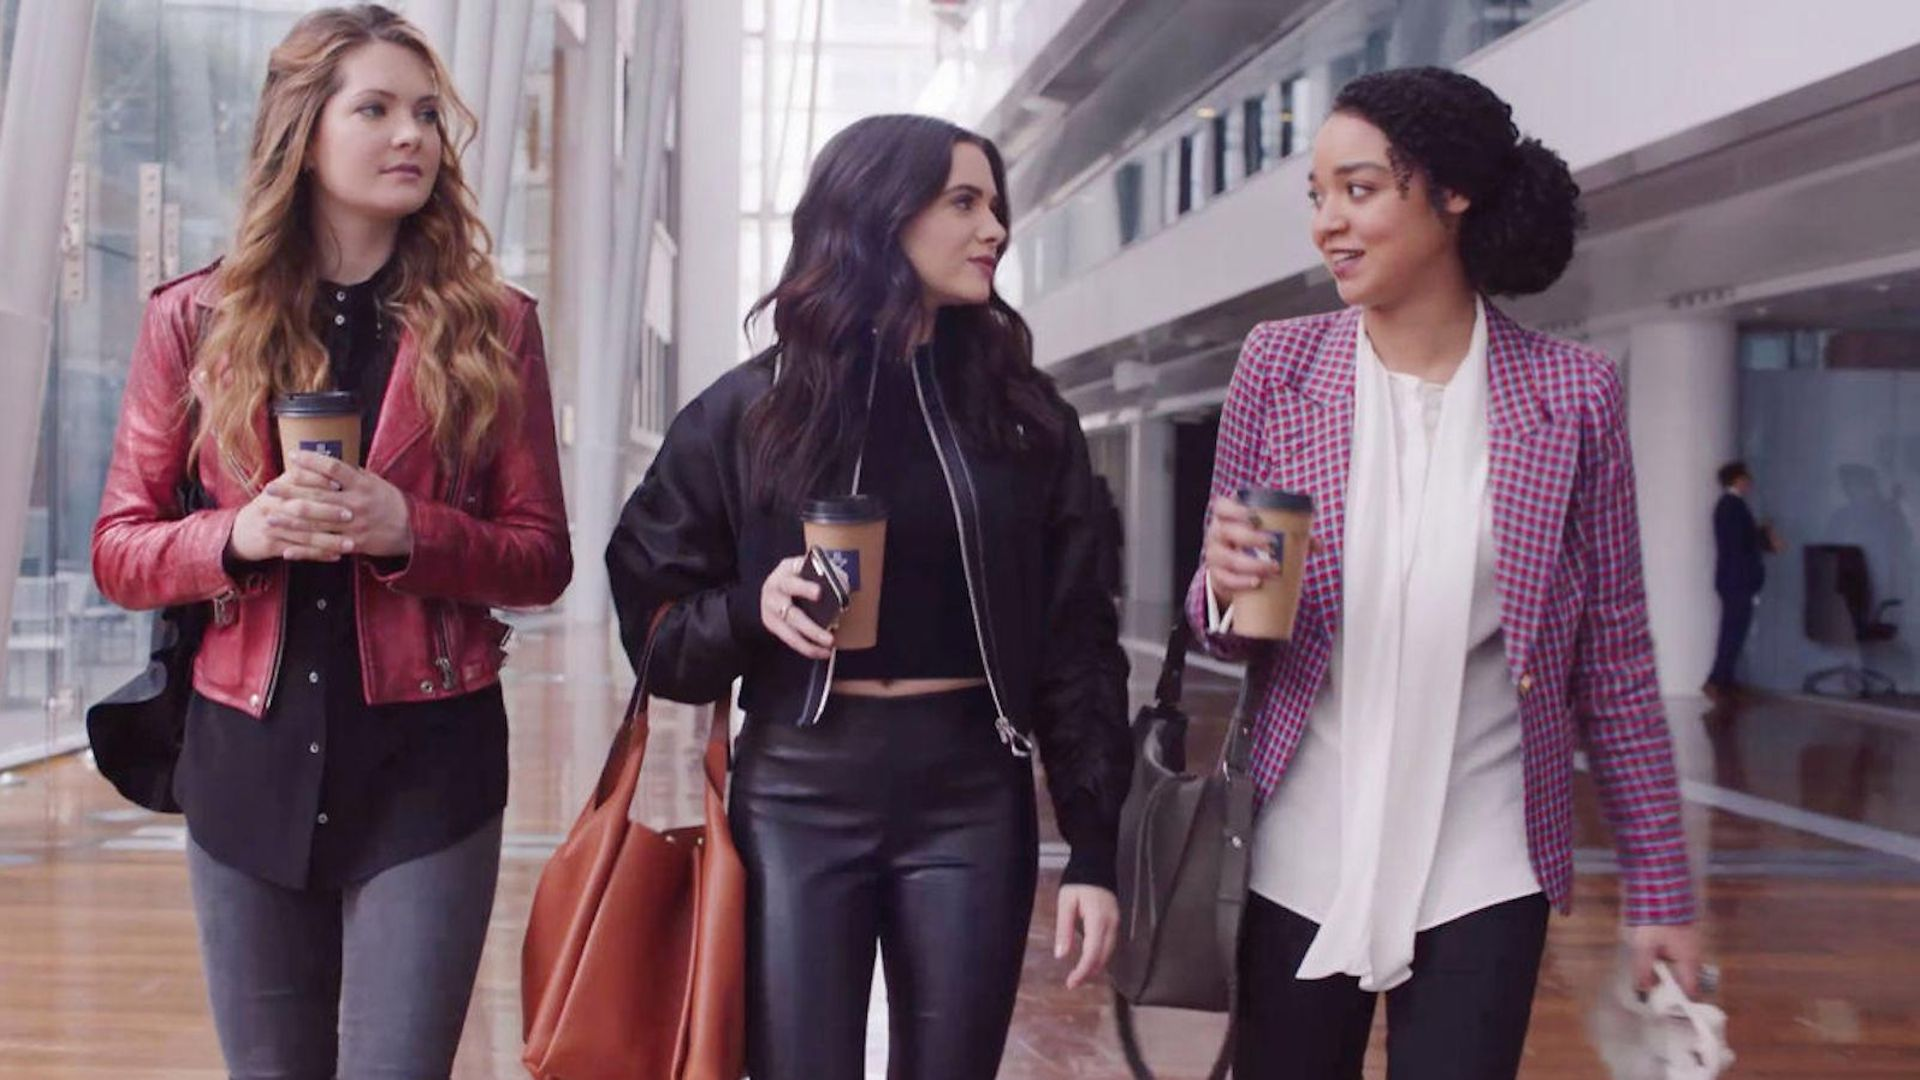 Meghann Fahy, Katie Stevens and Aisha Dee in The Bold Type - Credit: Freeform